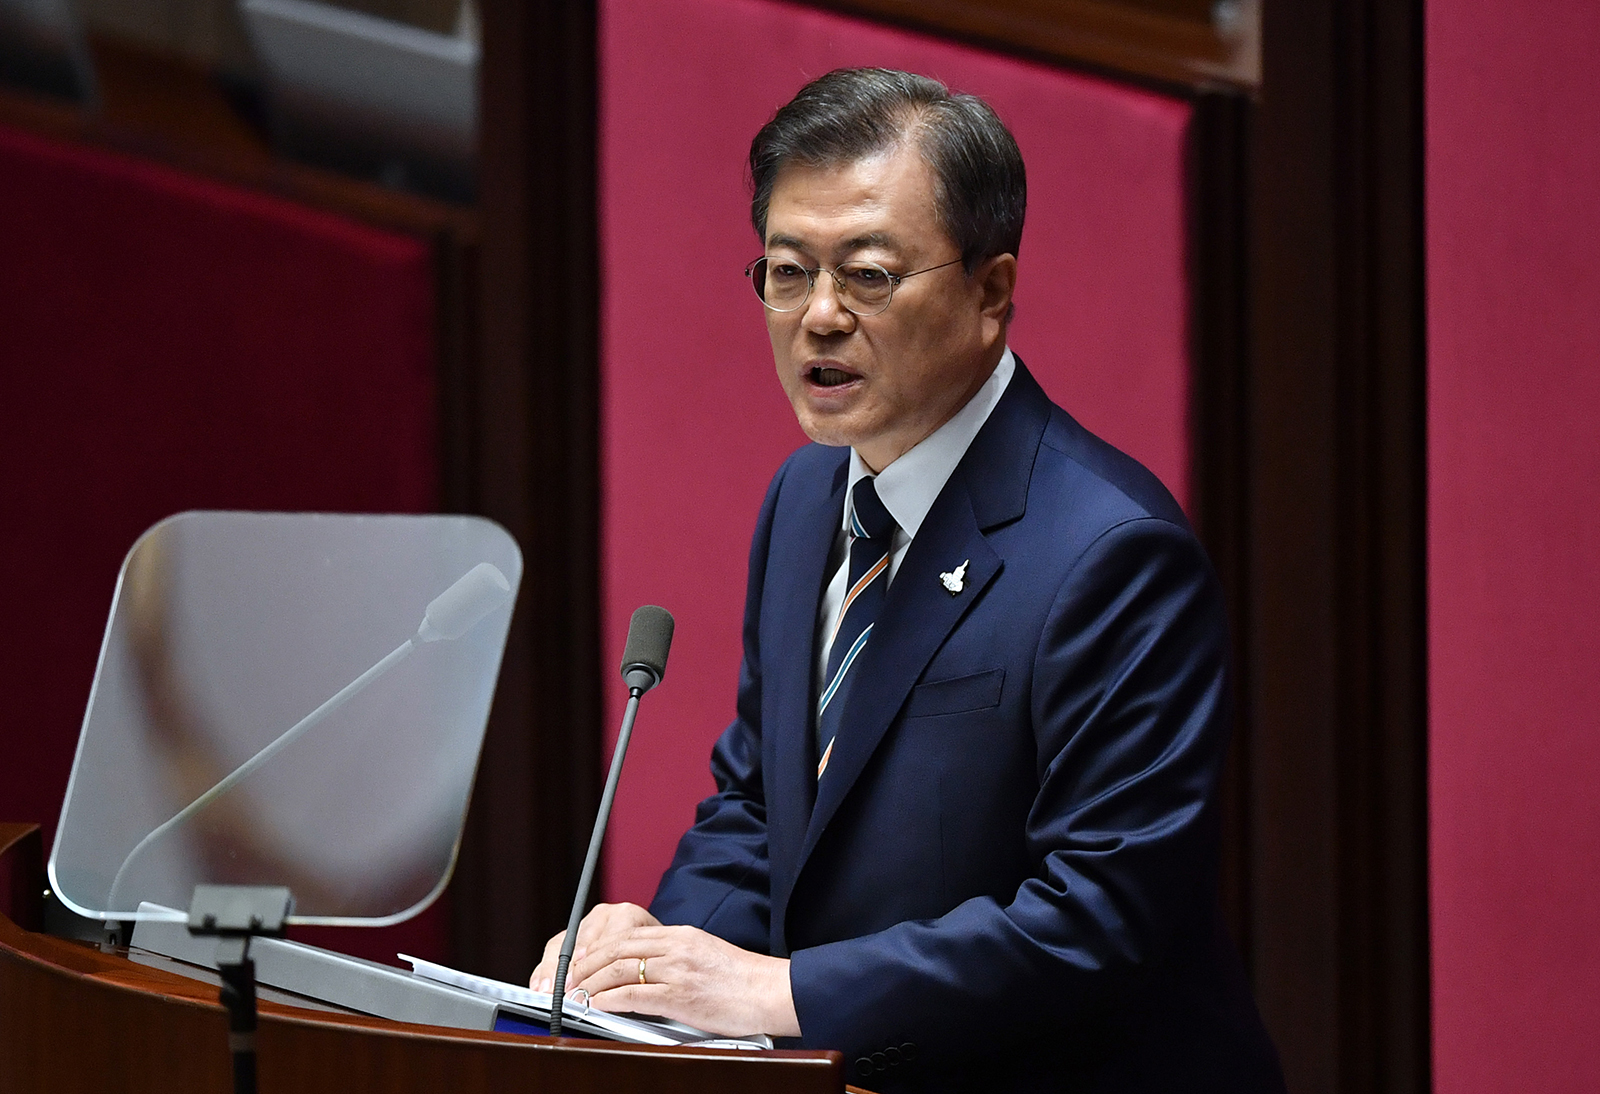 South Korea's President Moon Jae-in delivers a speech during the opening ceremony of the 21st National Assembly term in Seoul, South Korea, on July 16.